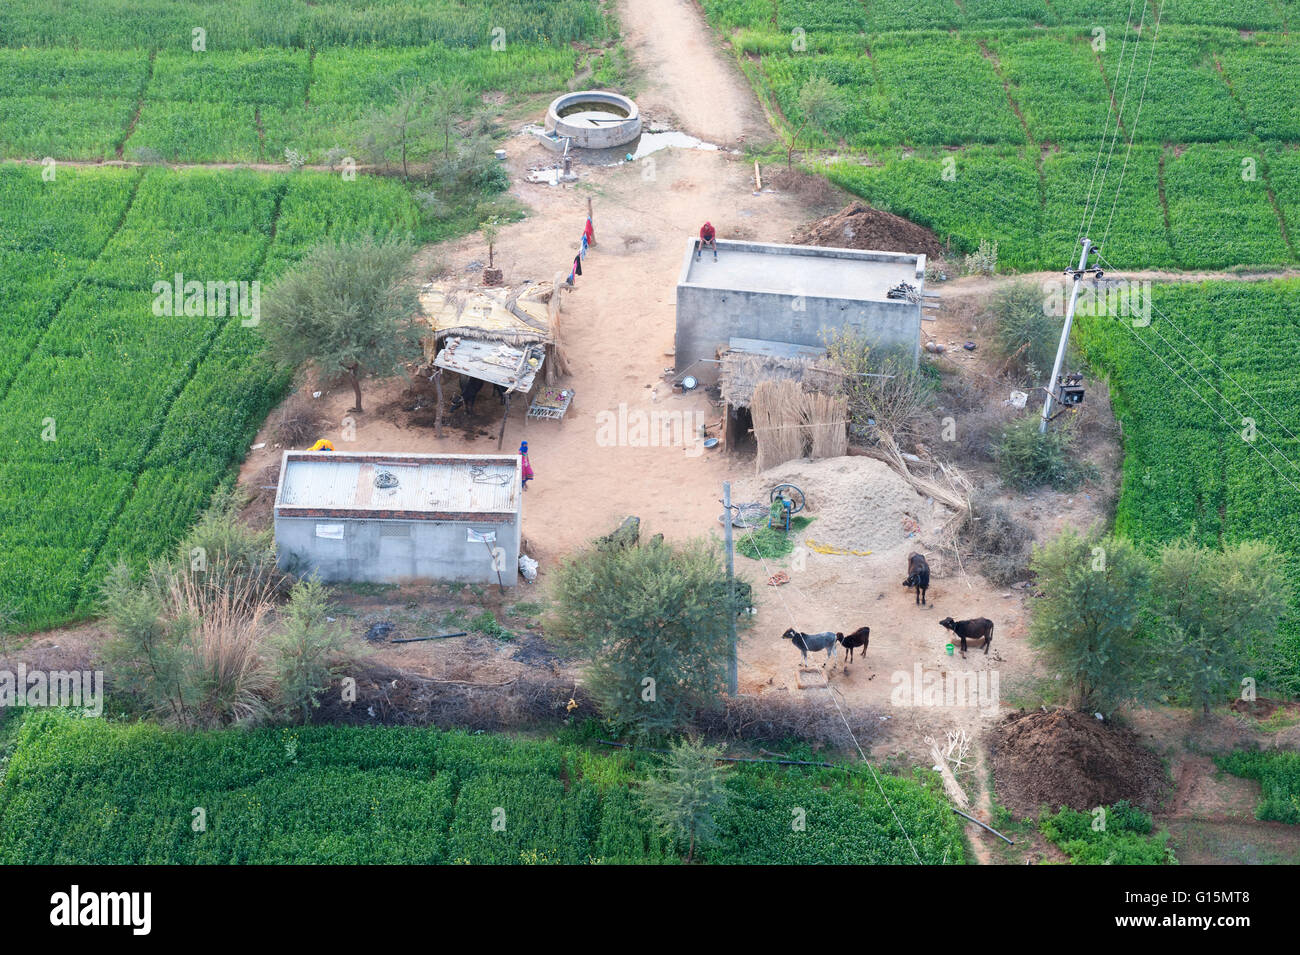 Man sitting on house roof in tiny agricultural hamlet amidst fields of vegetables, northeast of Jaipur, Rajasthan, - Stock Image